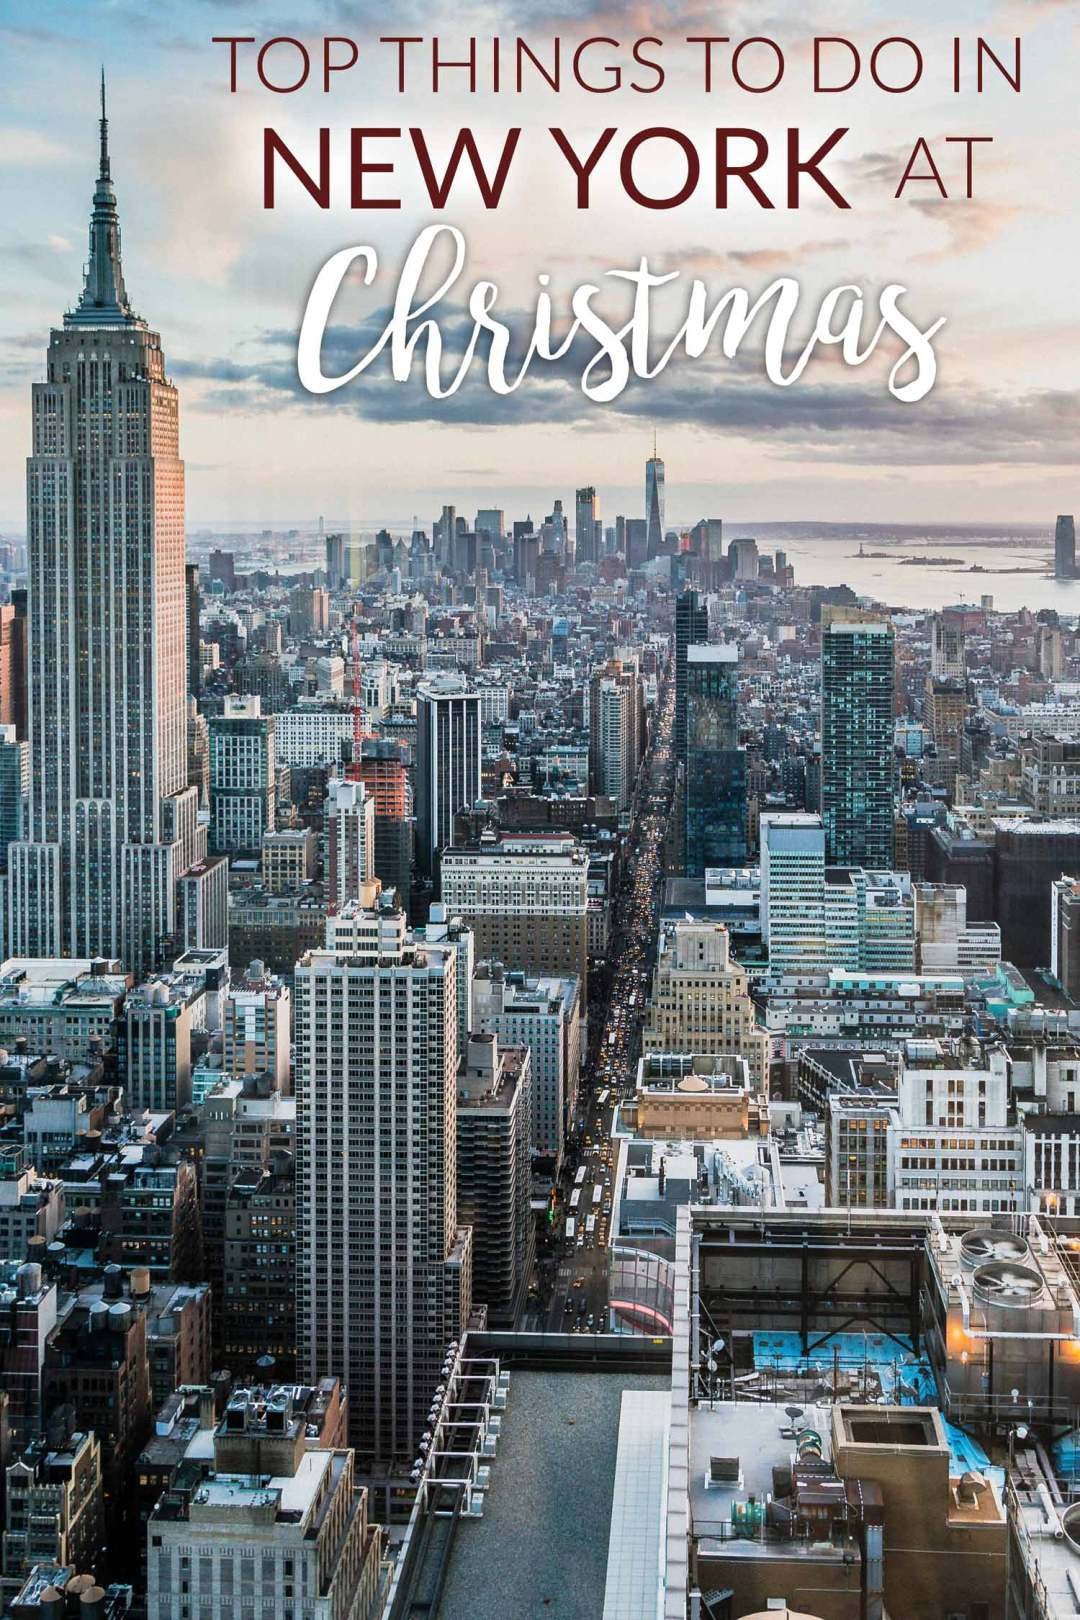 Top Things to do in New York at Christmas